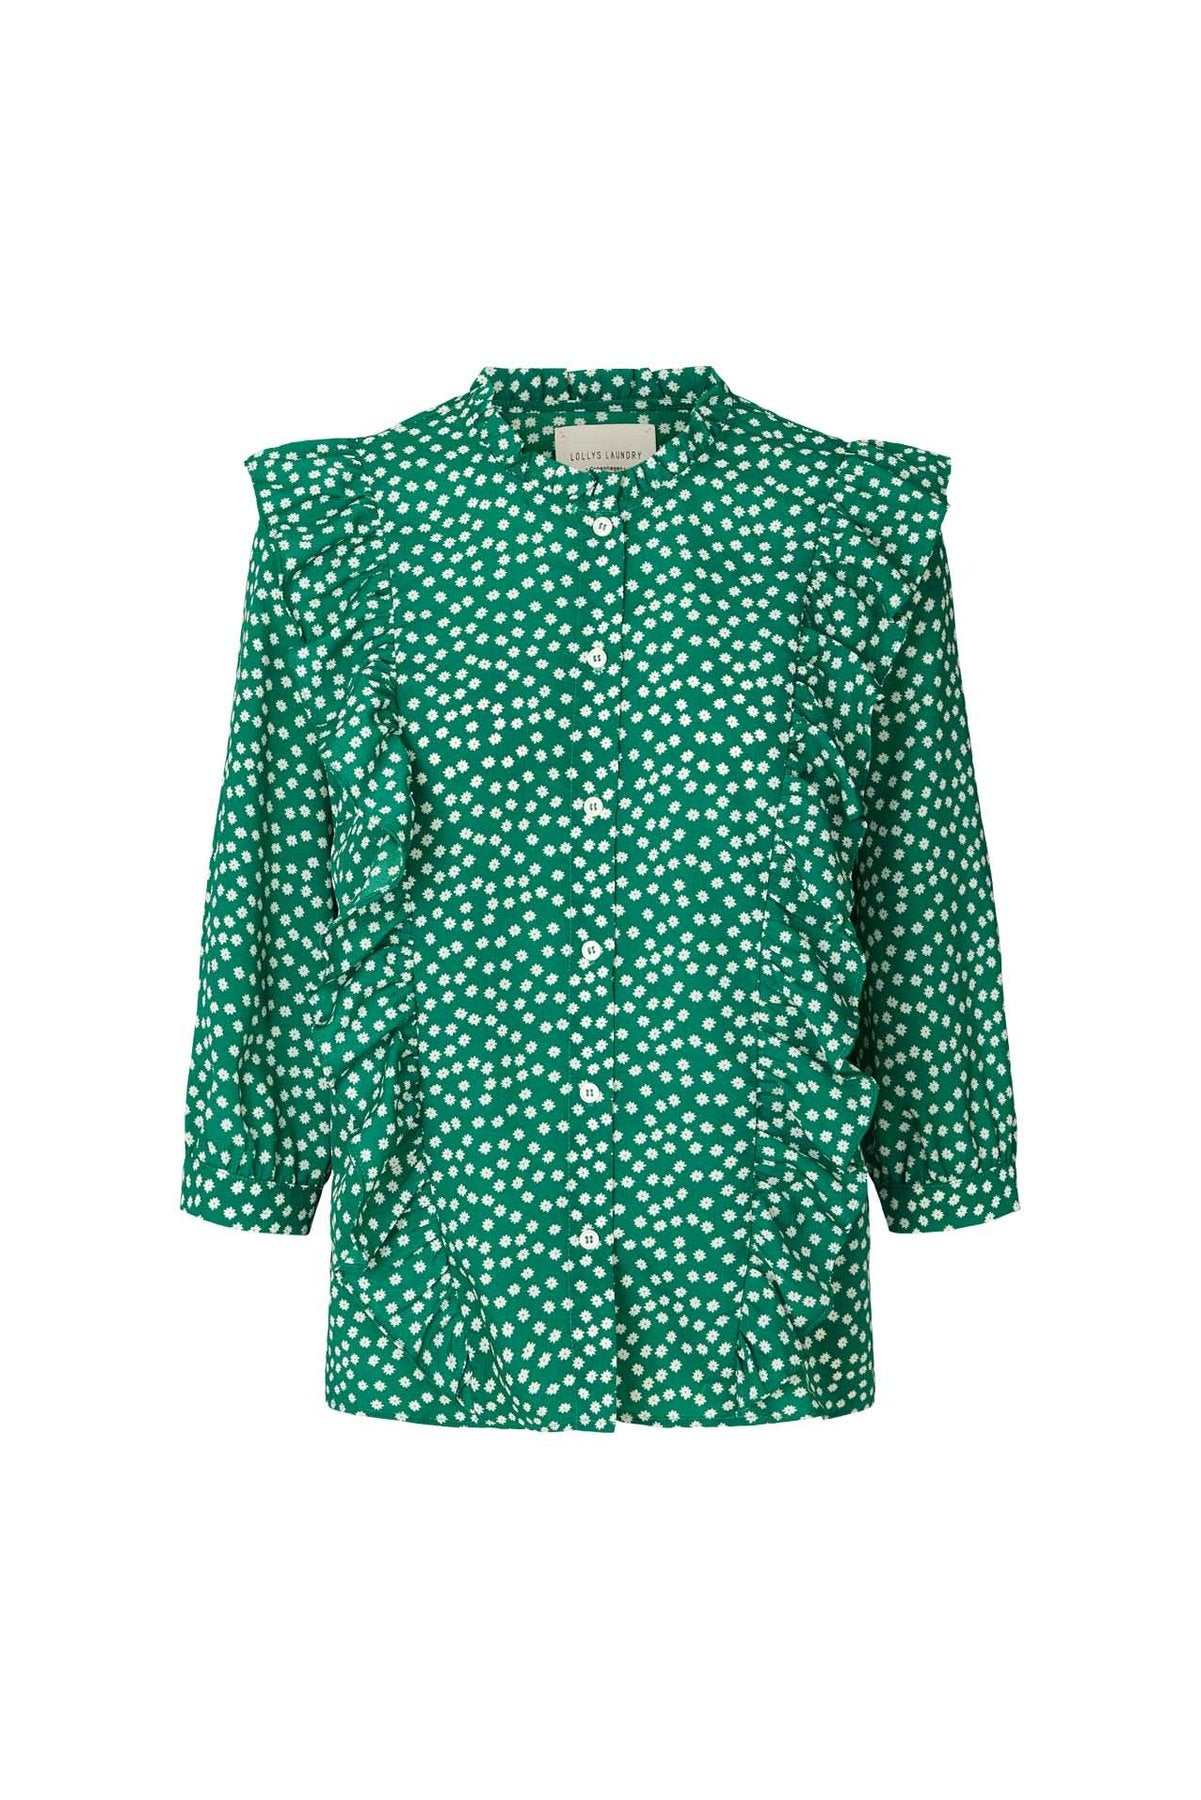 Lollys Laundry Hanni Shirt - Green